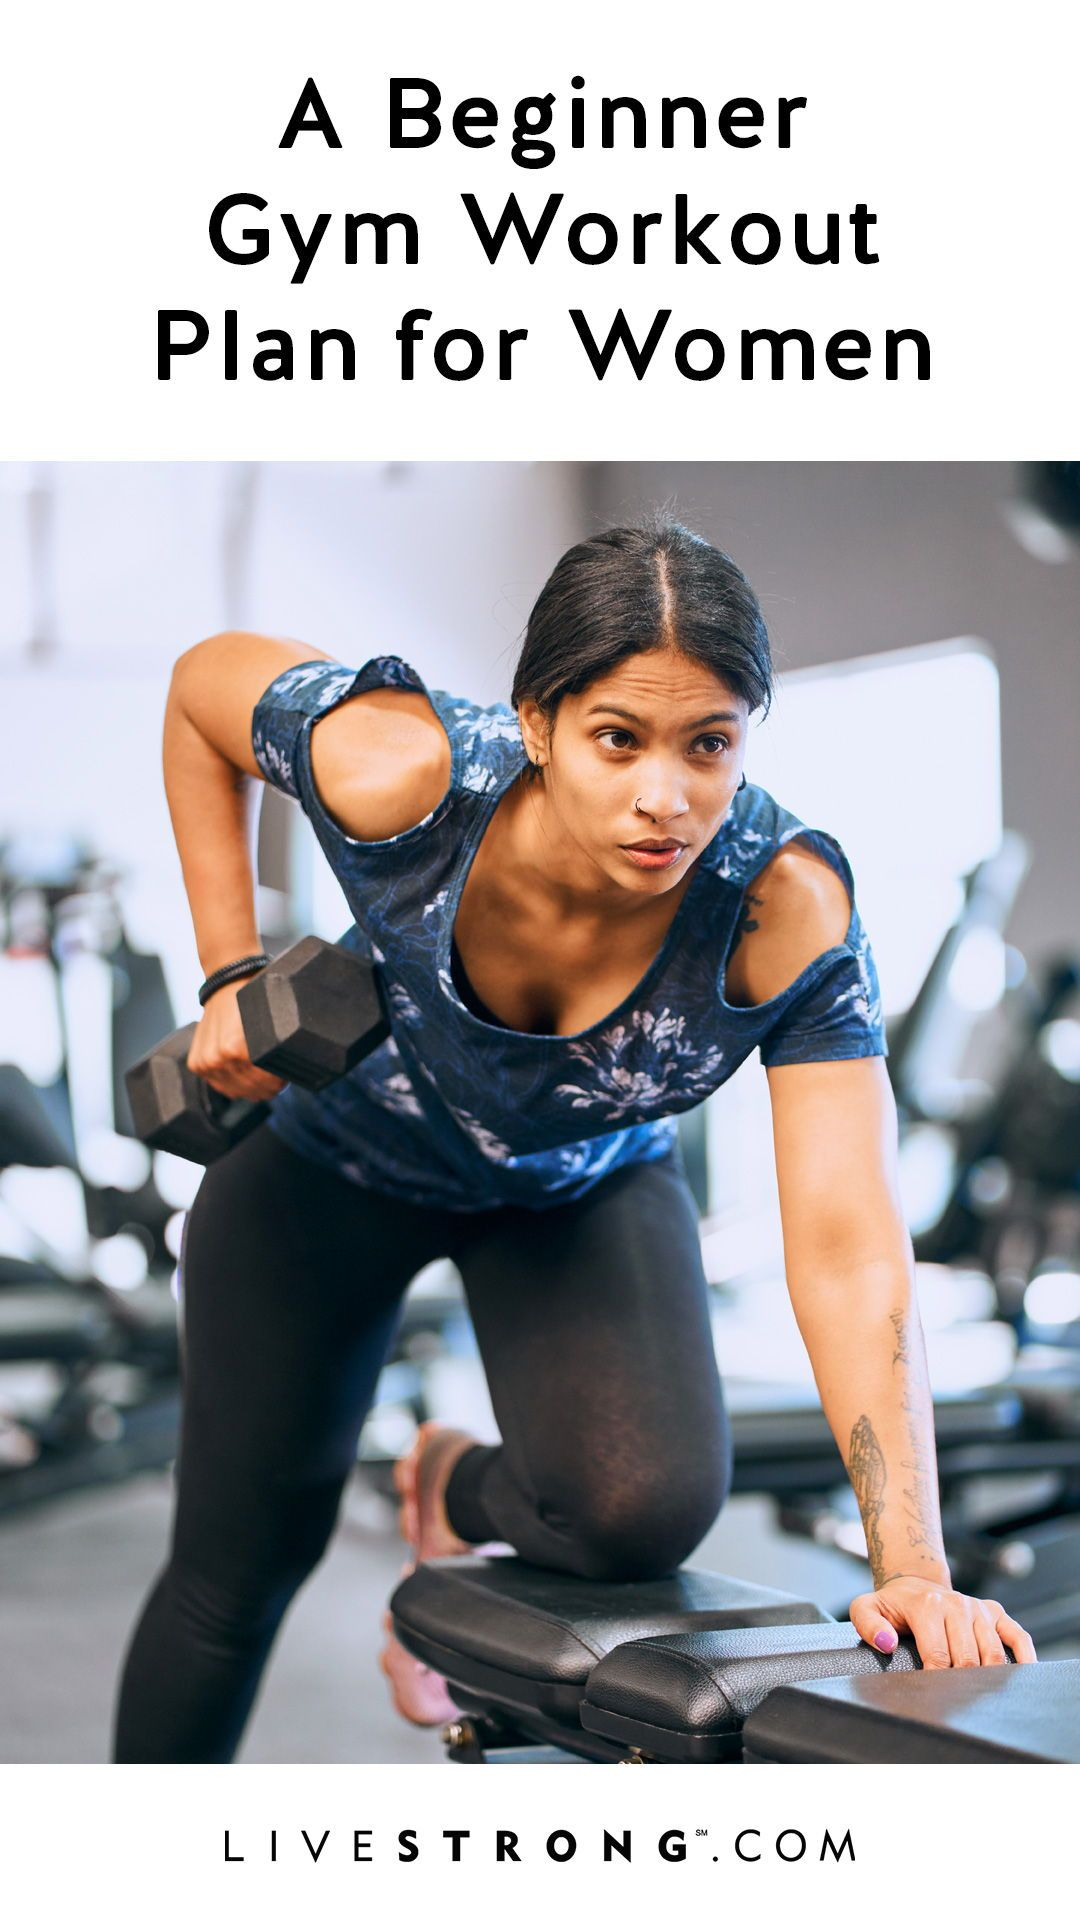 No need to worry if you're a newbie to the gym. We have the ultimate beginner gym workout for women. Here's how to get started with cardio and strength training.